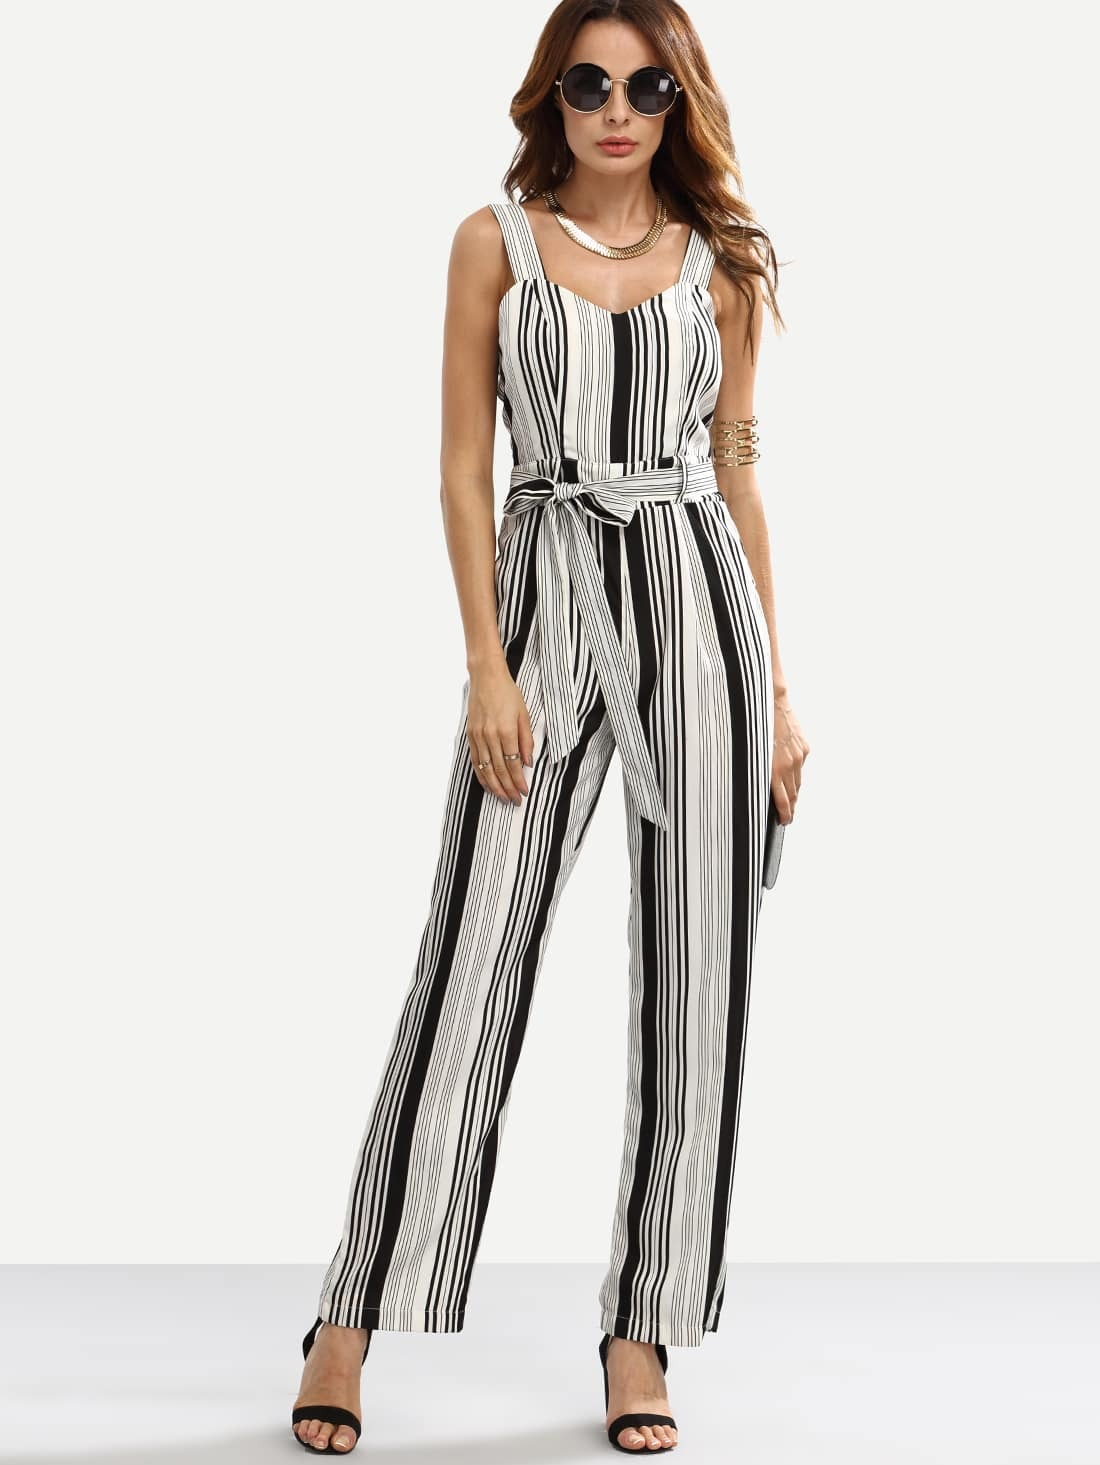 Shop jumpsuits, rompers and maxi dresses for women from White House Black Market in a varity of styles and colors. Perfect fit, great .